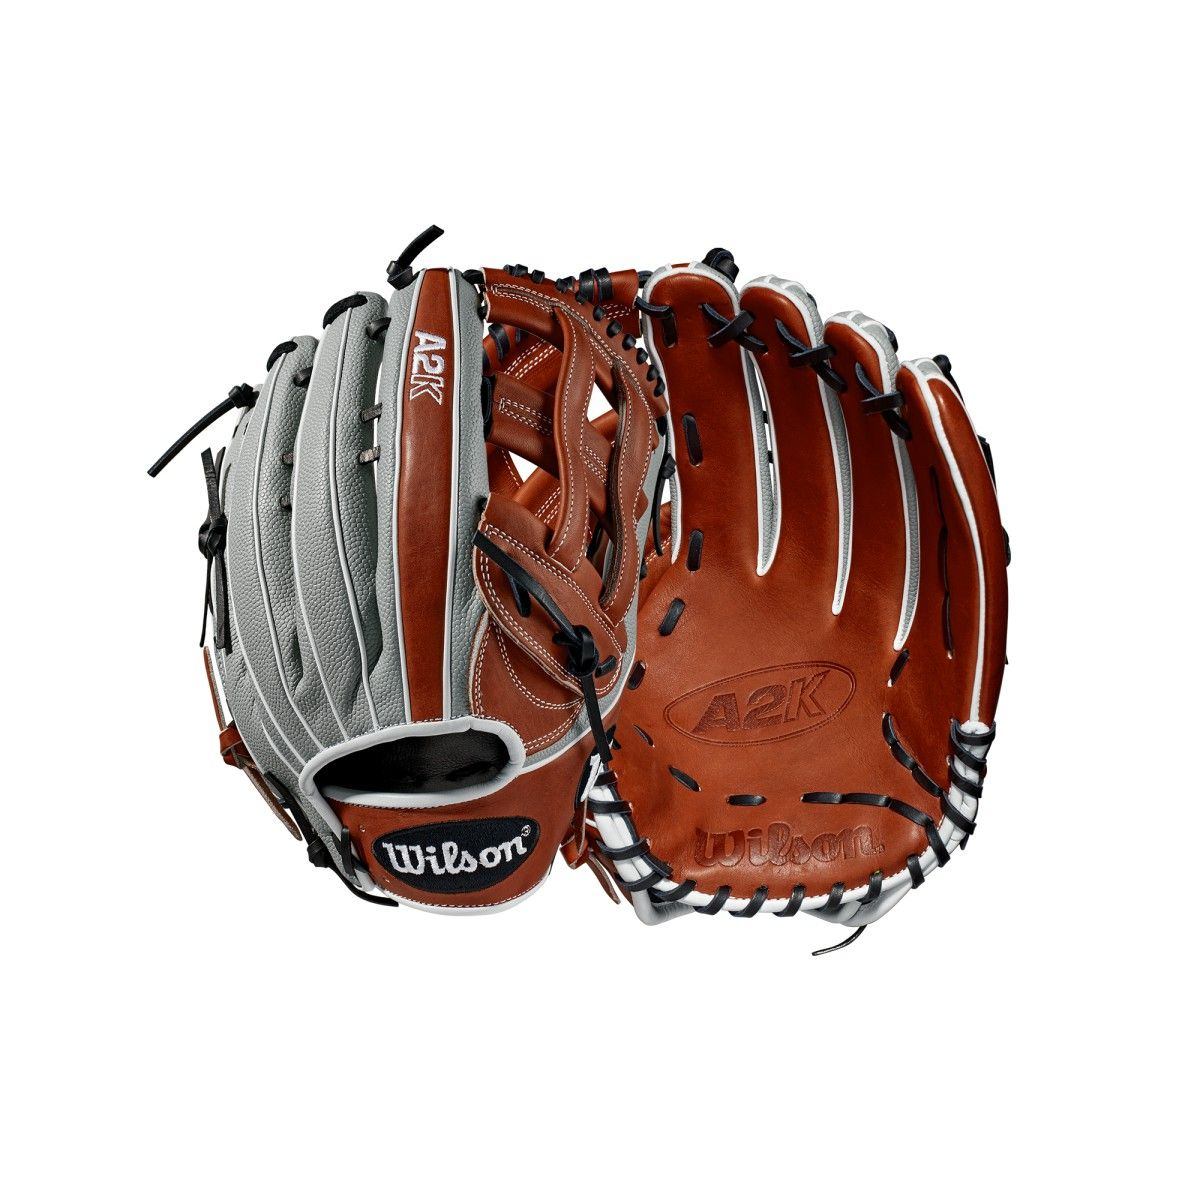 At 12 75 Mlb Outfielders Love The A2k 1799 The Incredible Length And Deep Pocket Help Them Make Plays And The New Superskin Baseball Glove Gloves Baseball